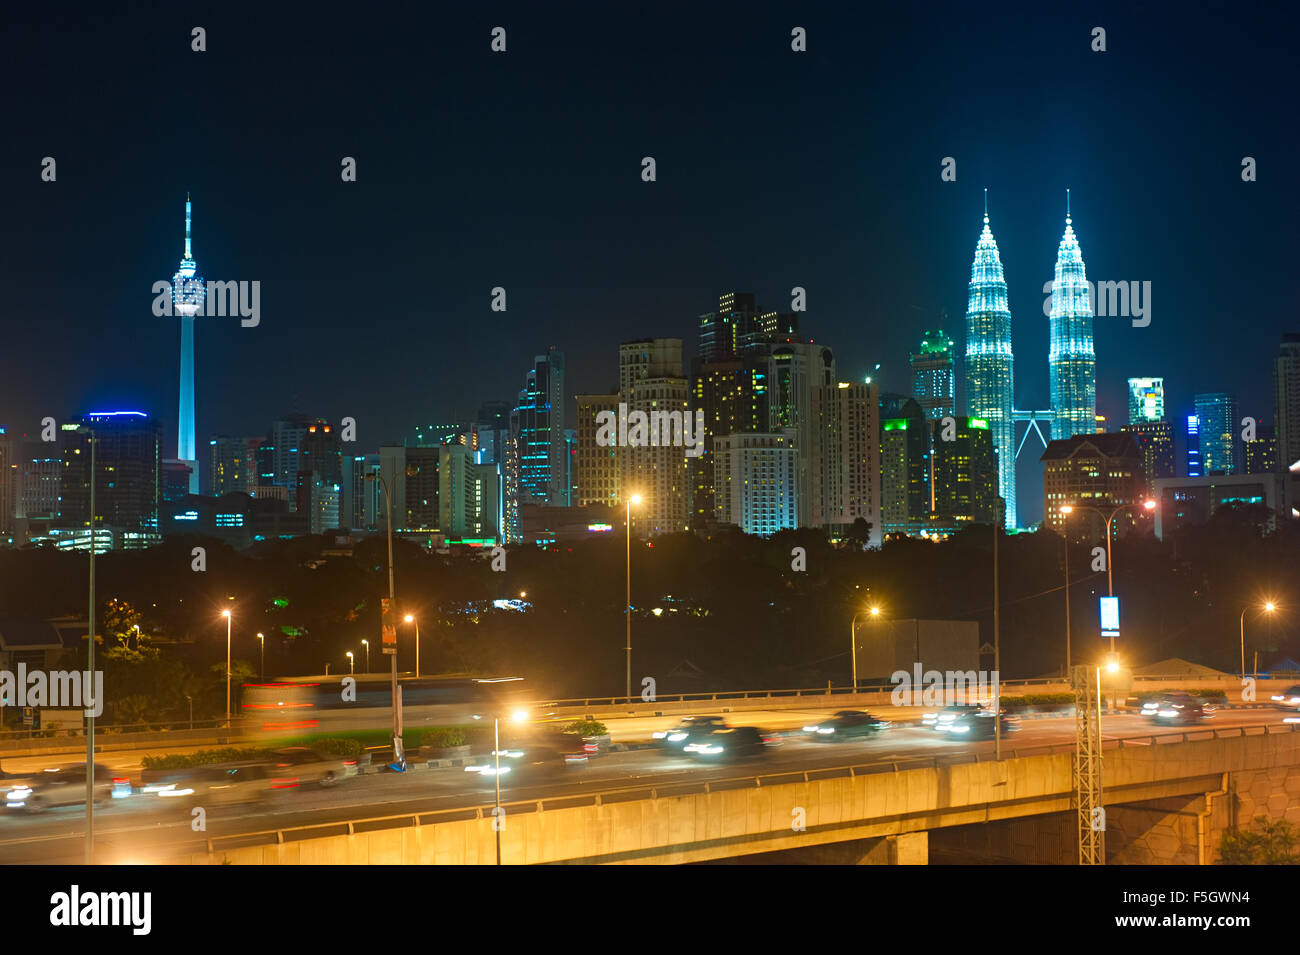 NIght traffic in Kuala Lumpur. Skyline of KL on the background. Malaysia - Stock Image